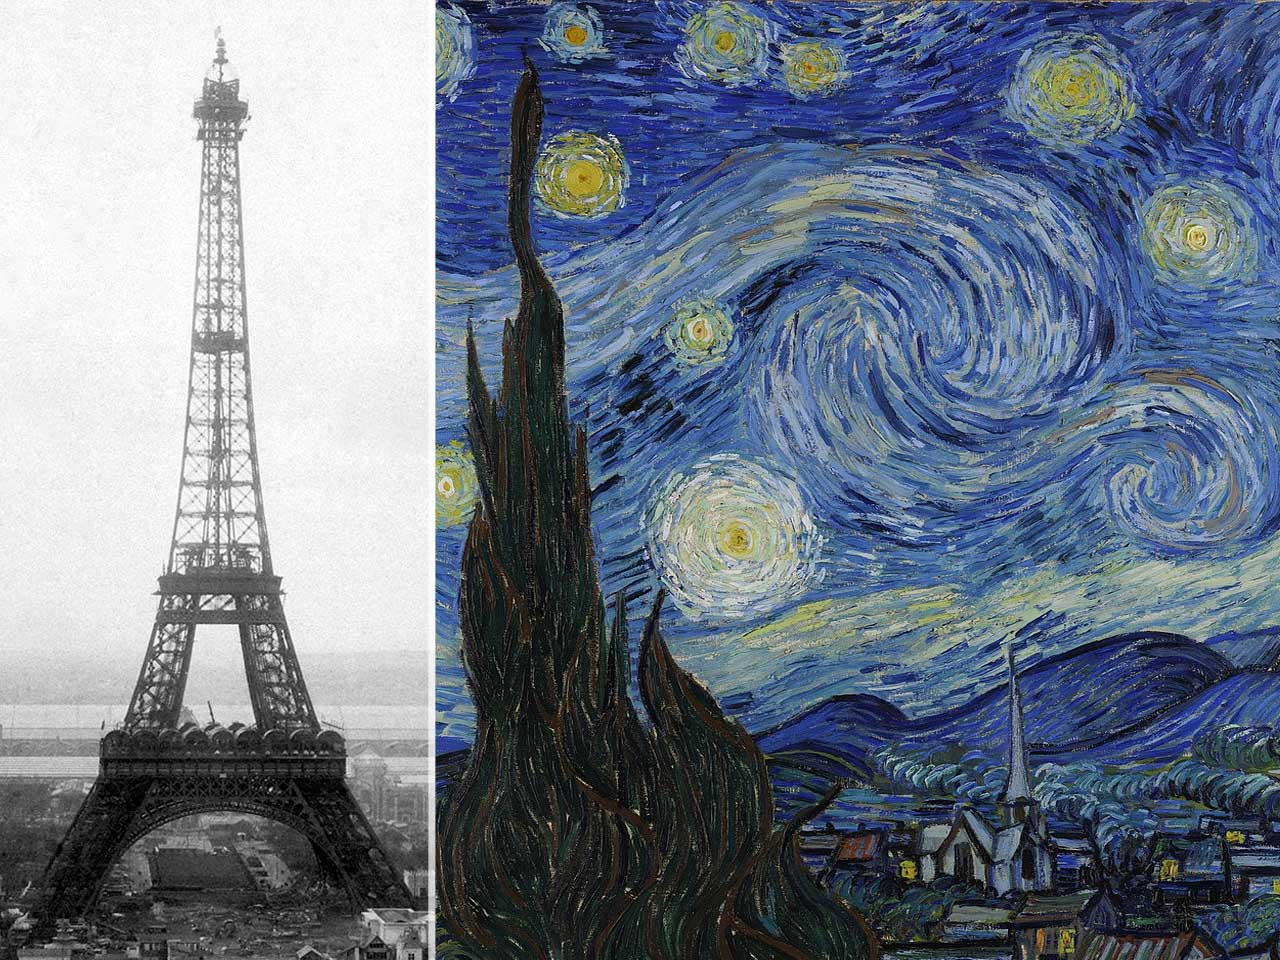 Eiffel Tower was inaugurated in 1889 for the World's Fair, which was the same year Van Gogh's 'Starry Night' was painted.